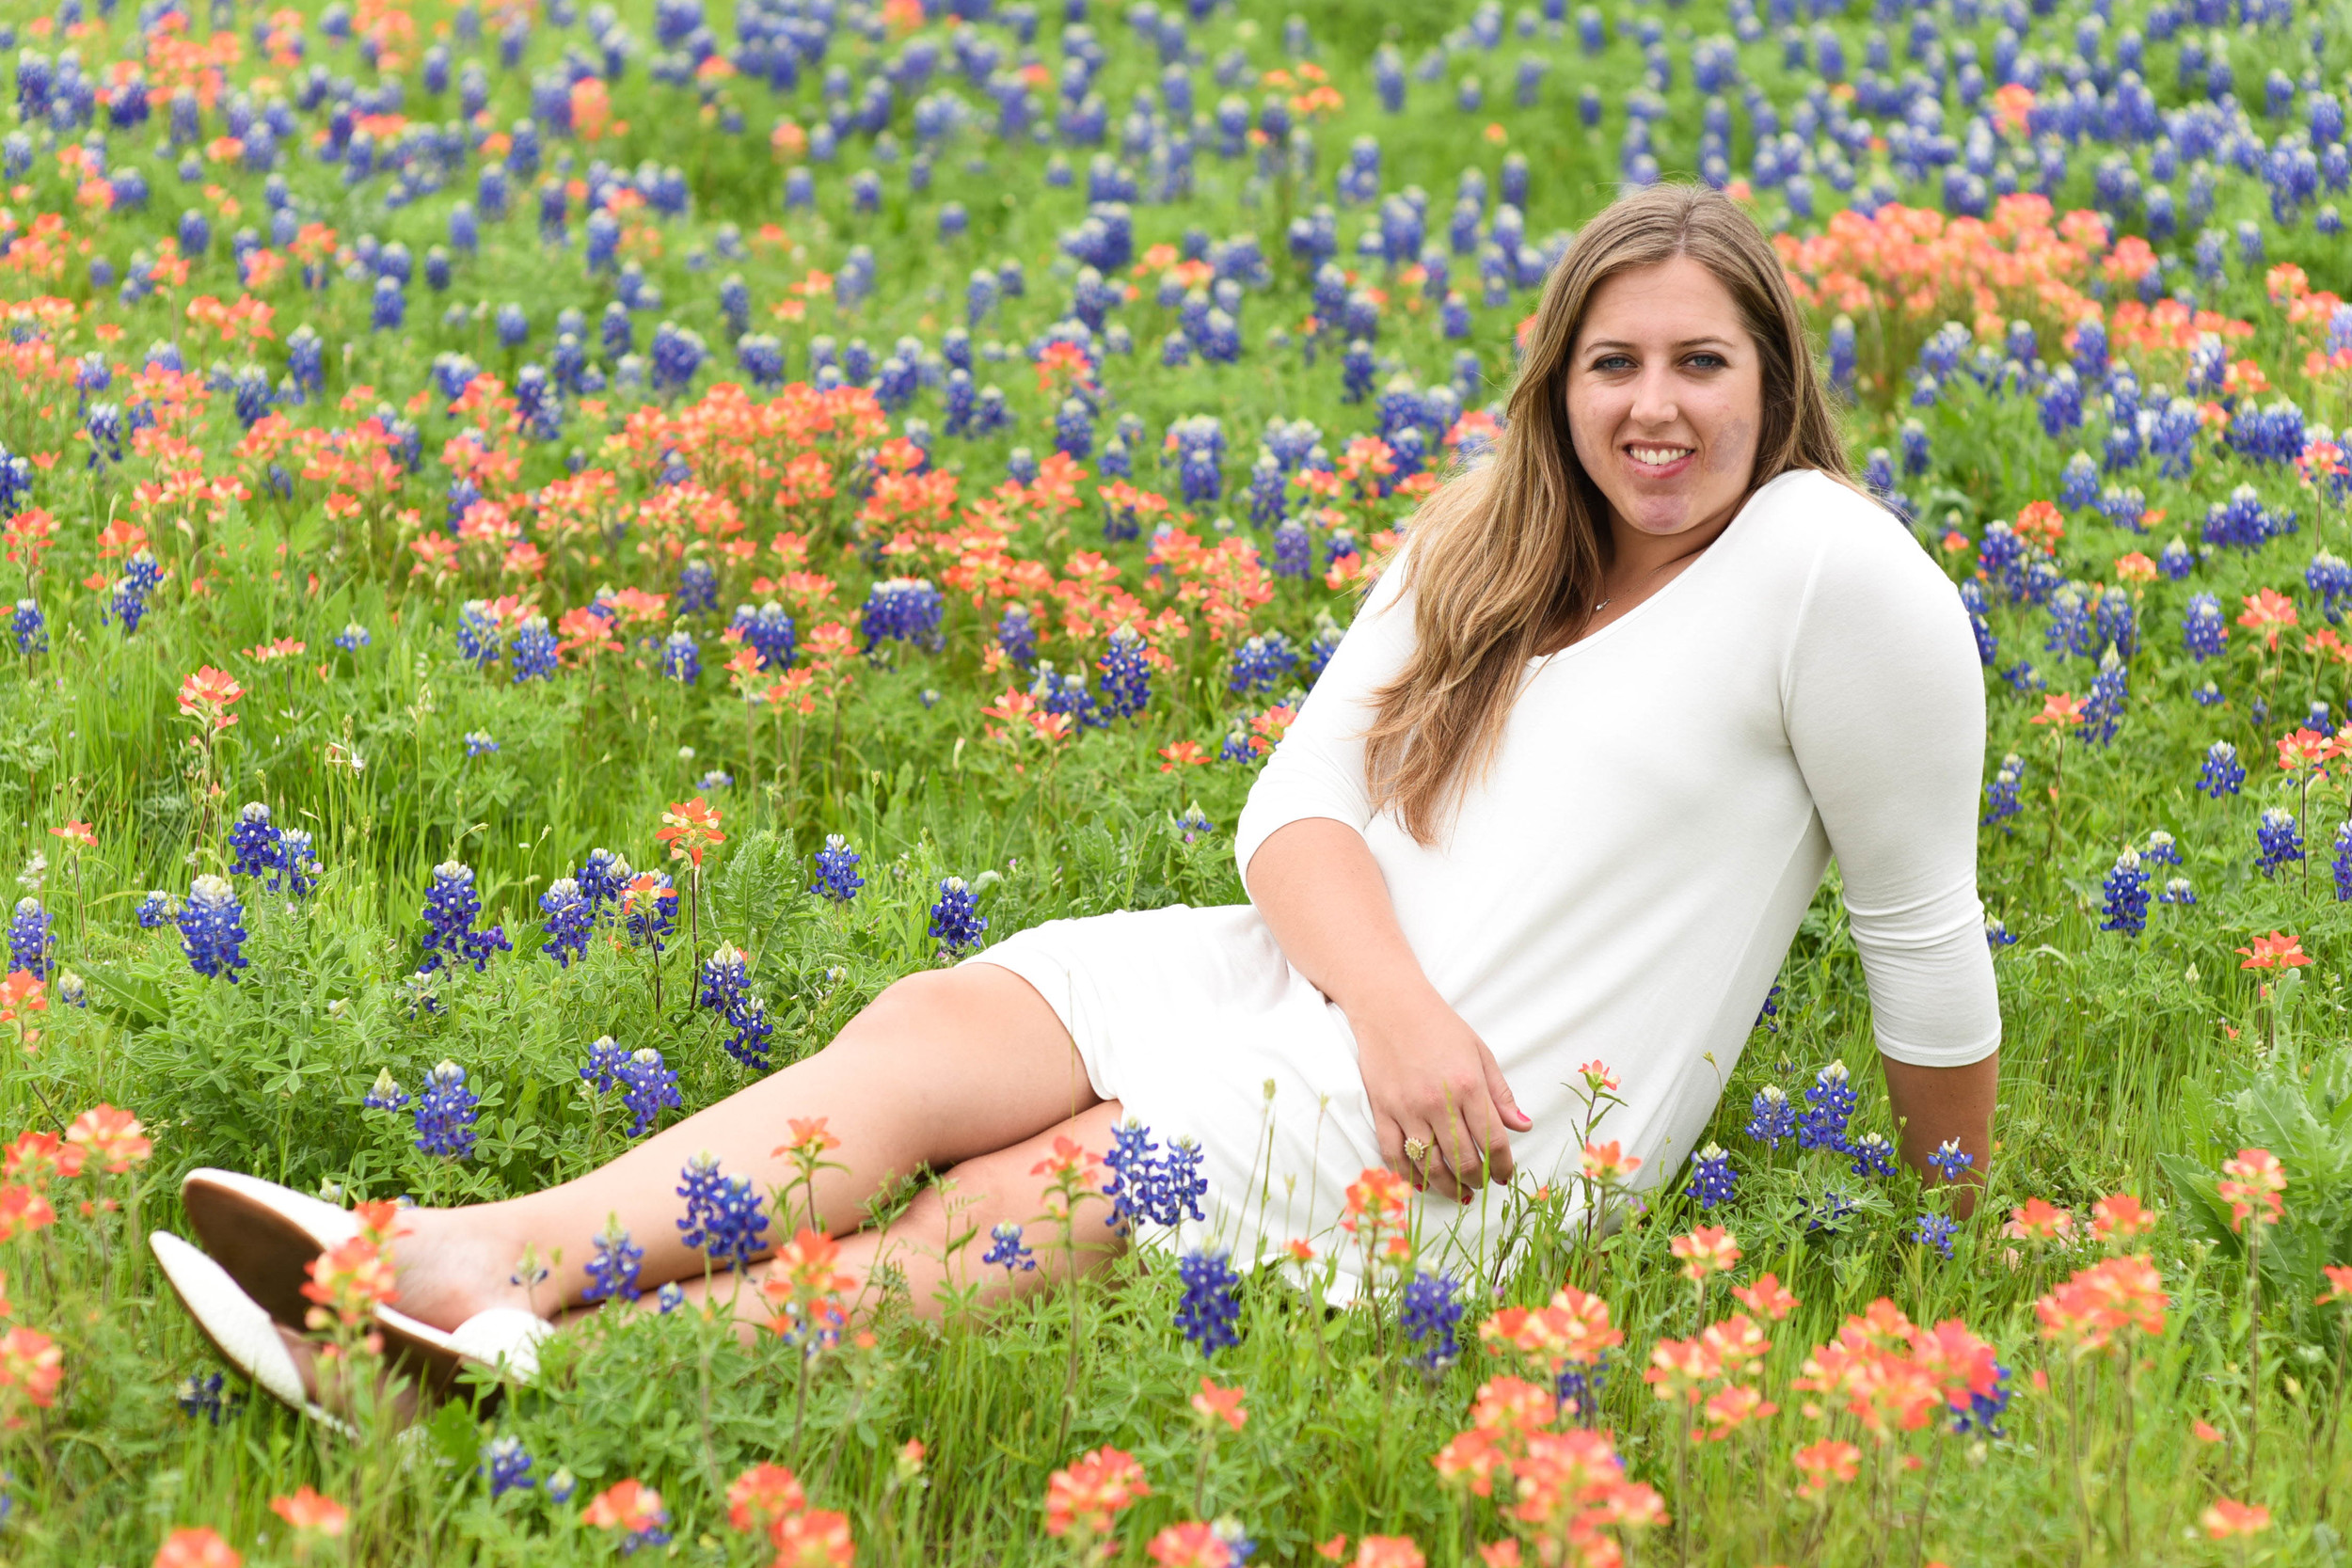 Sarah and her roommate found this beautiful field of Bluebonnets and Indian Paint Brushes on accident.